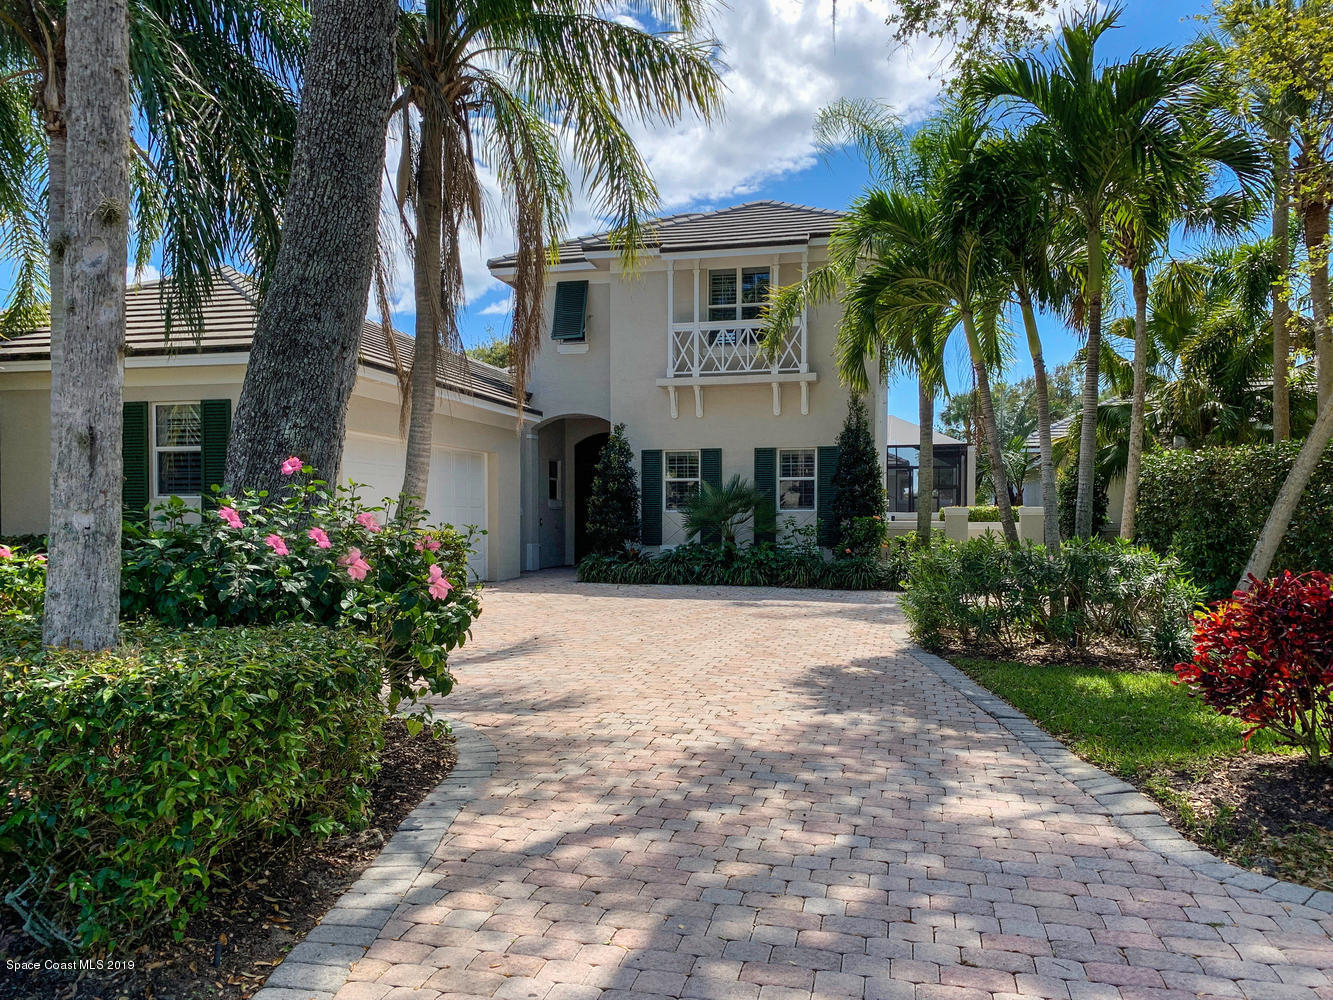 Single Family Homes for Sale at 130 Lakeview Vero Beach, Florida 32963 United States